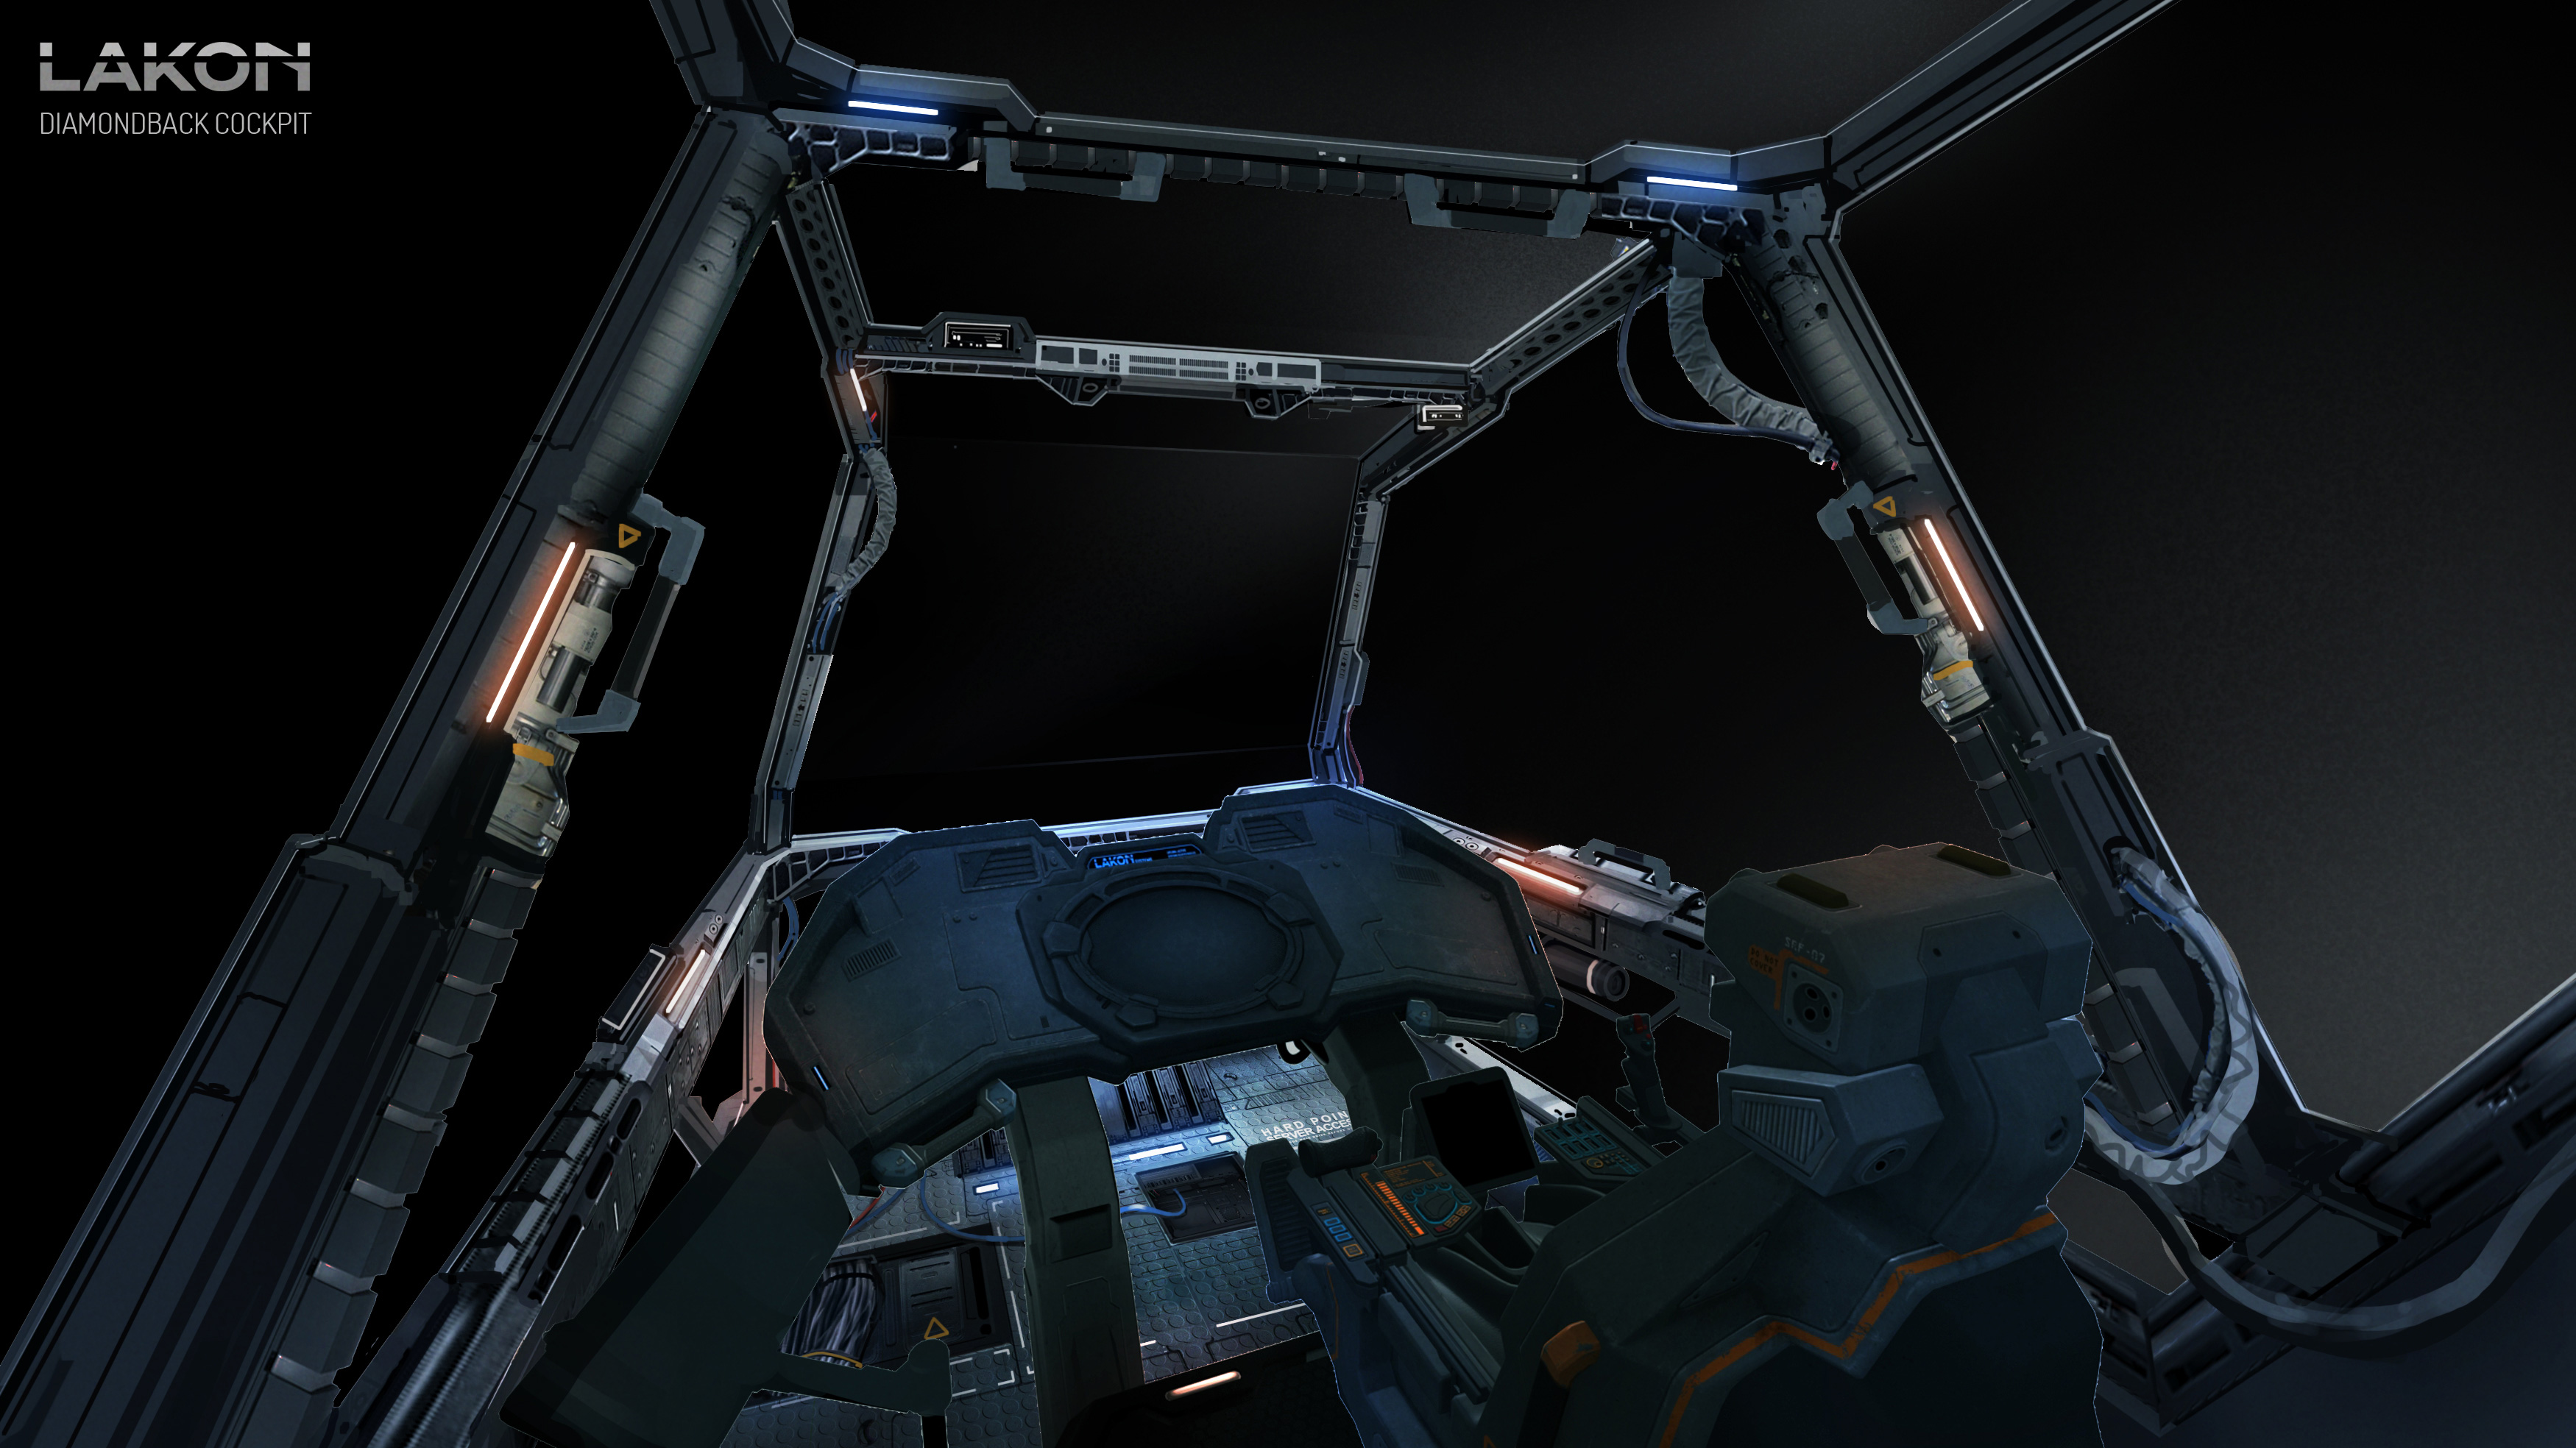 Frontier diamondback cockpit sneak peek hosting zaonce net